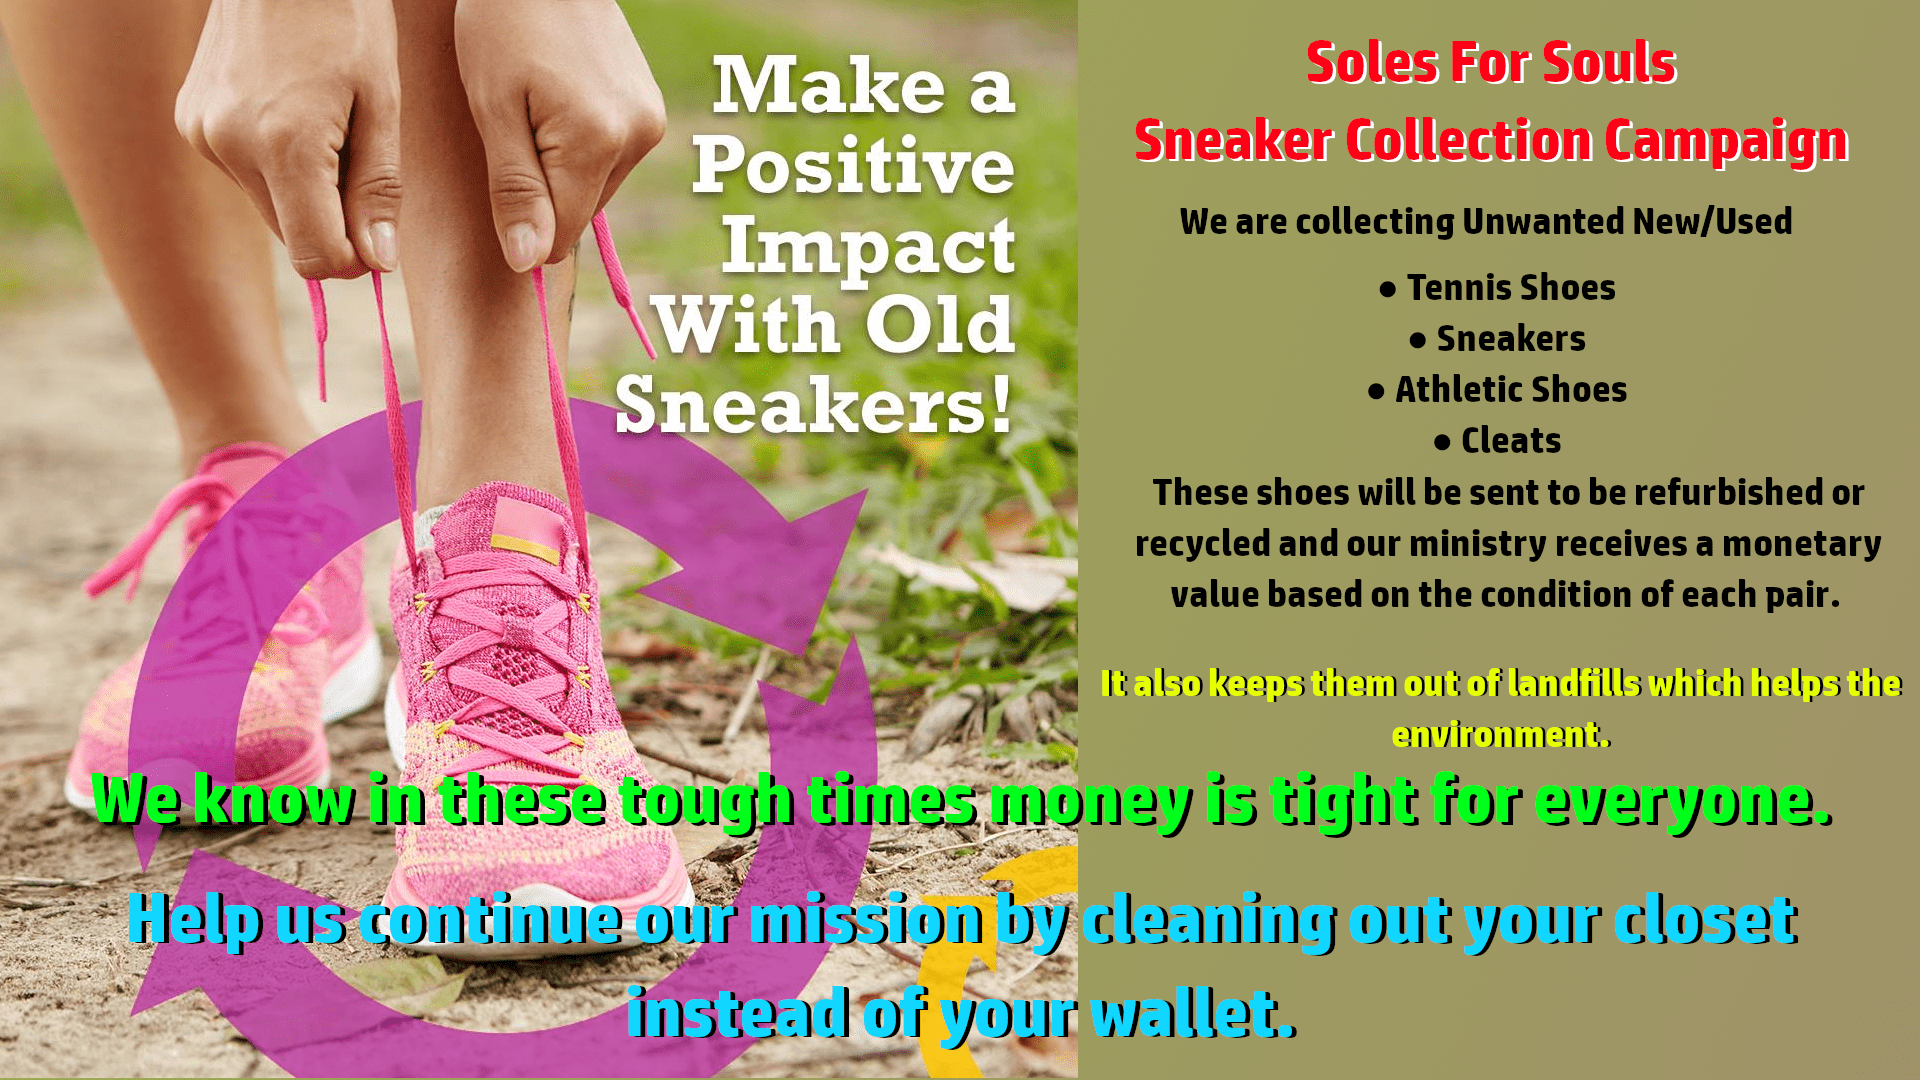 Soles for Souls Sneaker Collection Drive. We are accepting donations of new or used sneakers, tennis shoes, athletics shoes, and cleats. These shoes are sent off to a zero waster refurbishment or recycling facility where our ministry receives a monetary value per pair. Help us grow our ministry by cleaning out your closet, instead of your wallet.